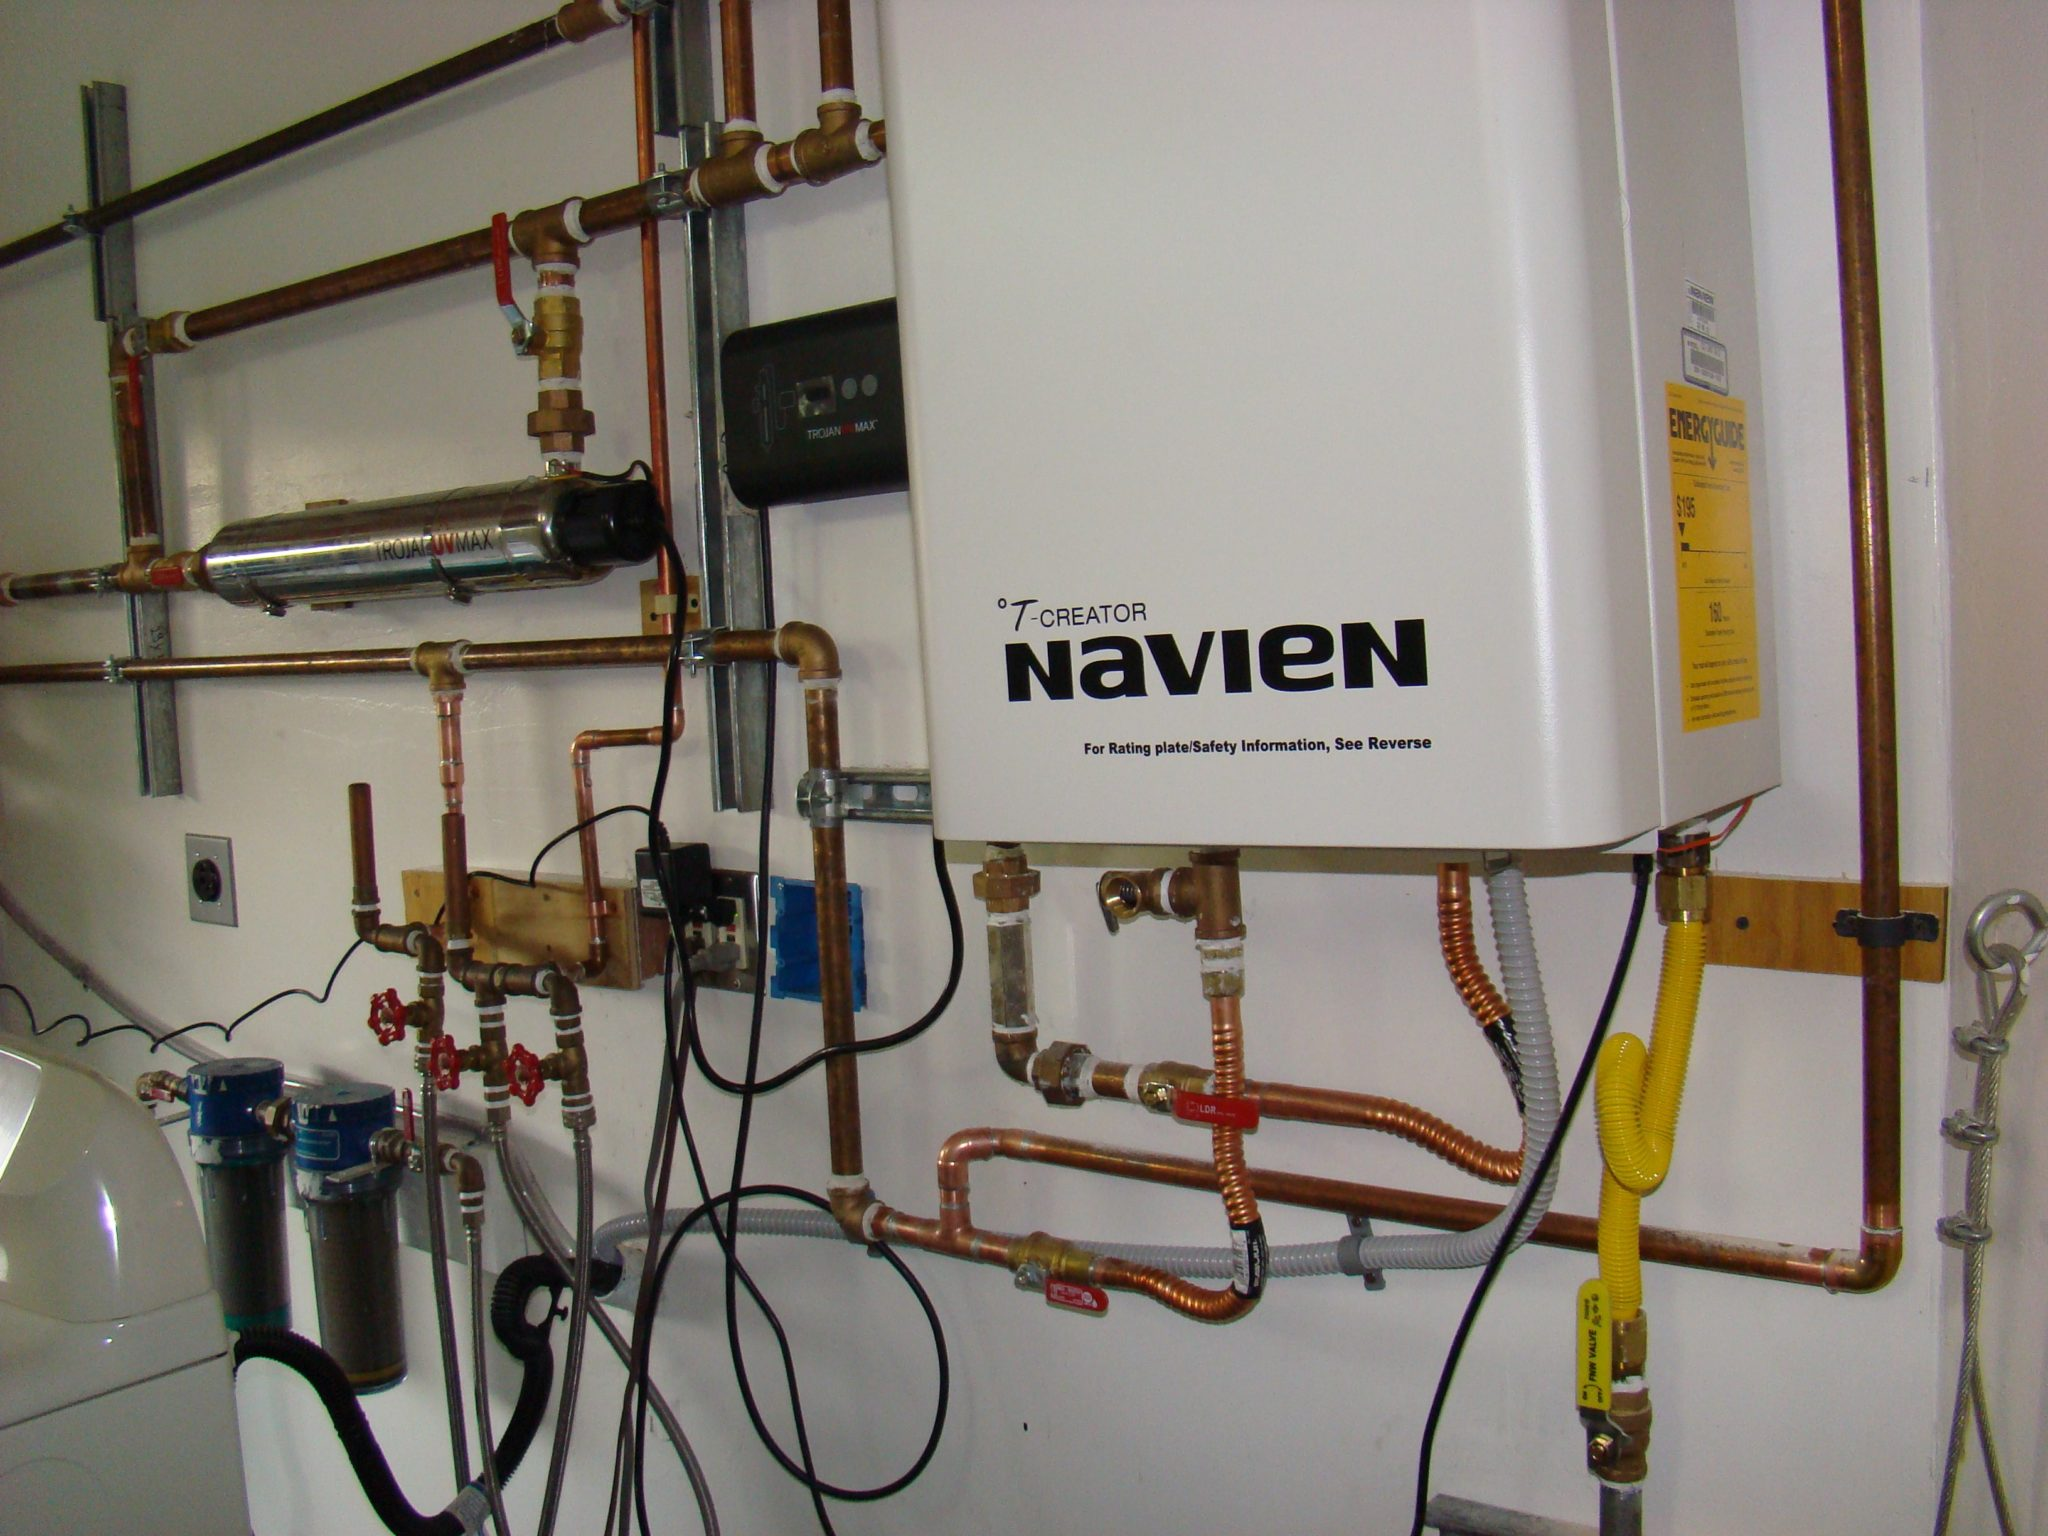 tankless water heater piping diagram sony xplod car cd player wiring navien technology improves